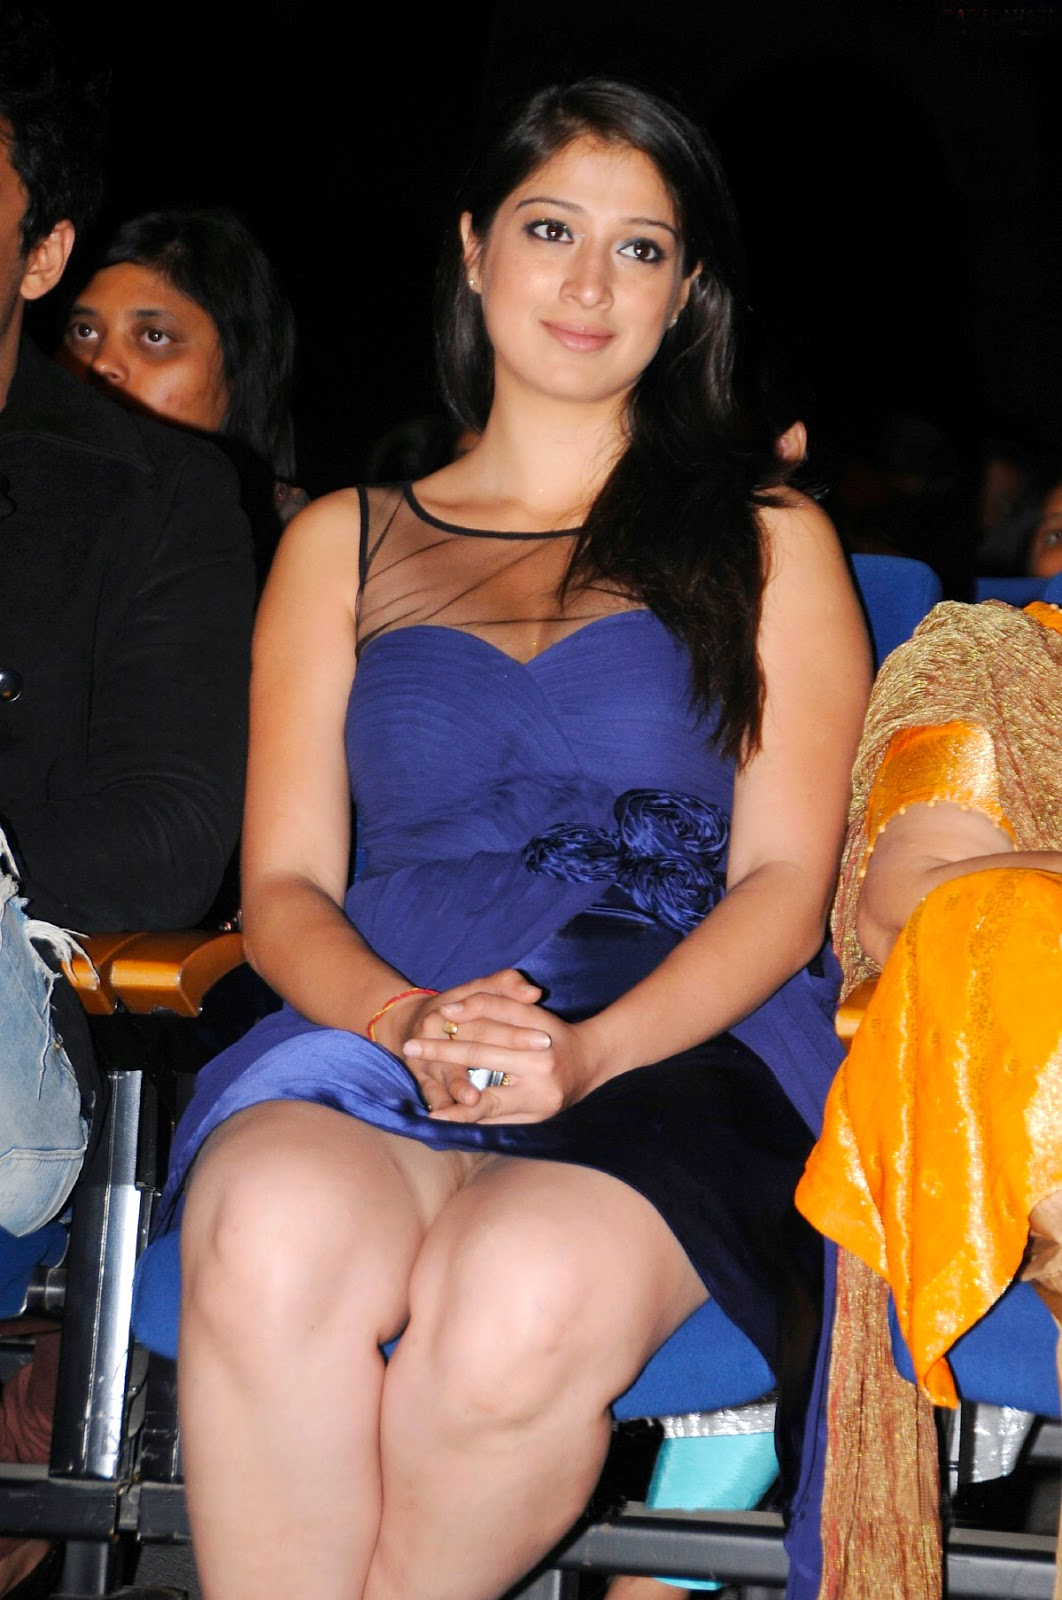 Bollywood Hot Actress Without Clothes